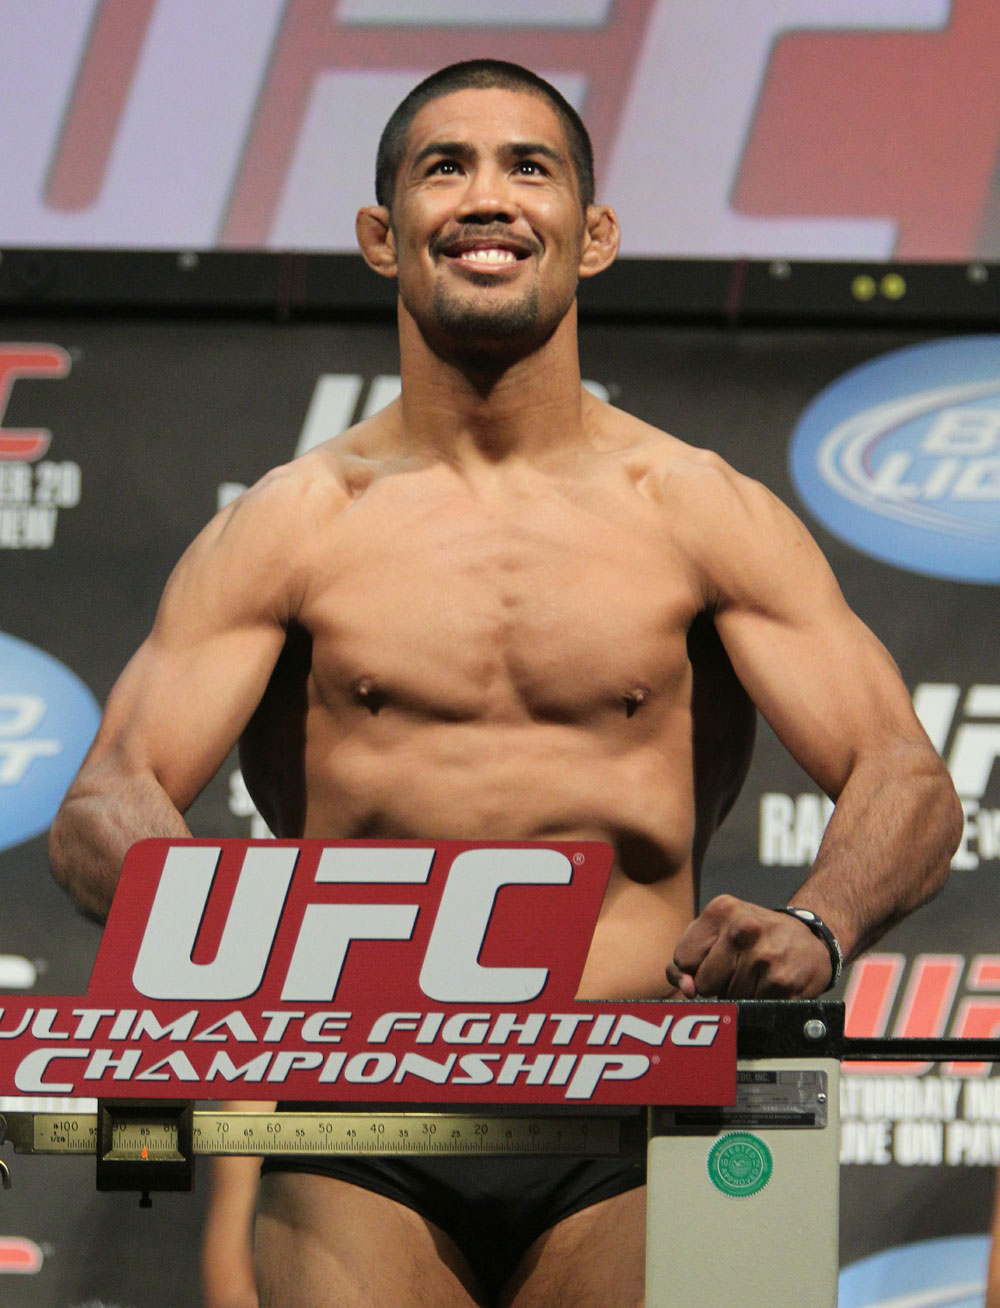 Mark Munoz weighs in at 185 lbs at the UFC 123 weigh-in at the Palace of Auburn Hills on November 19, 2010 in Auburn Hills, Michigan.  (Photo by Josh Hedges/Zuffa LLC/Zuffa LLC via Getty Images)